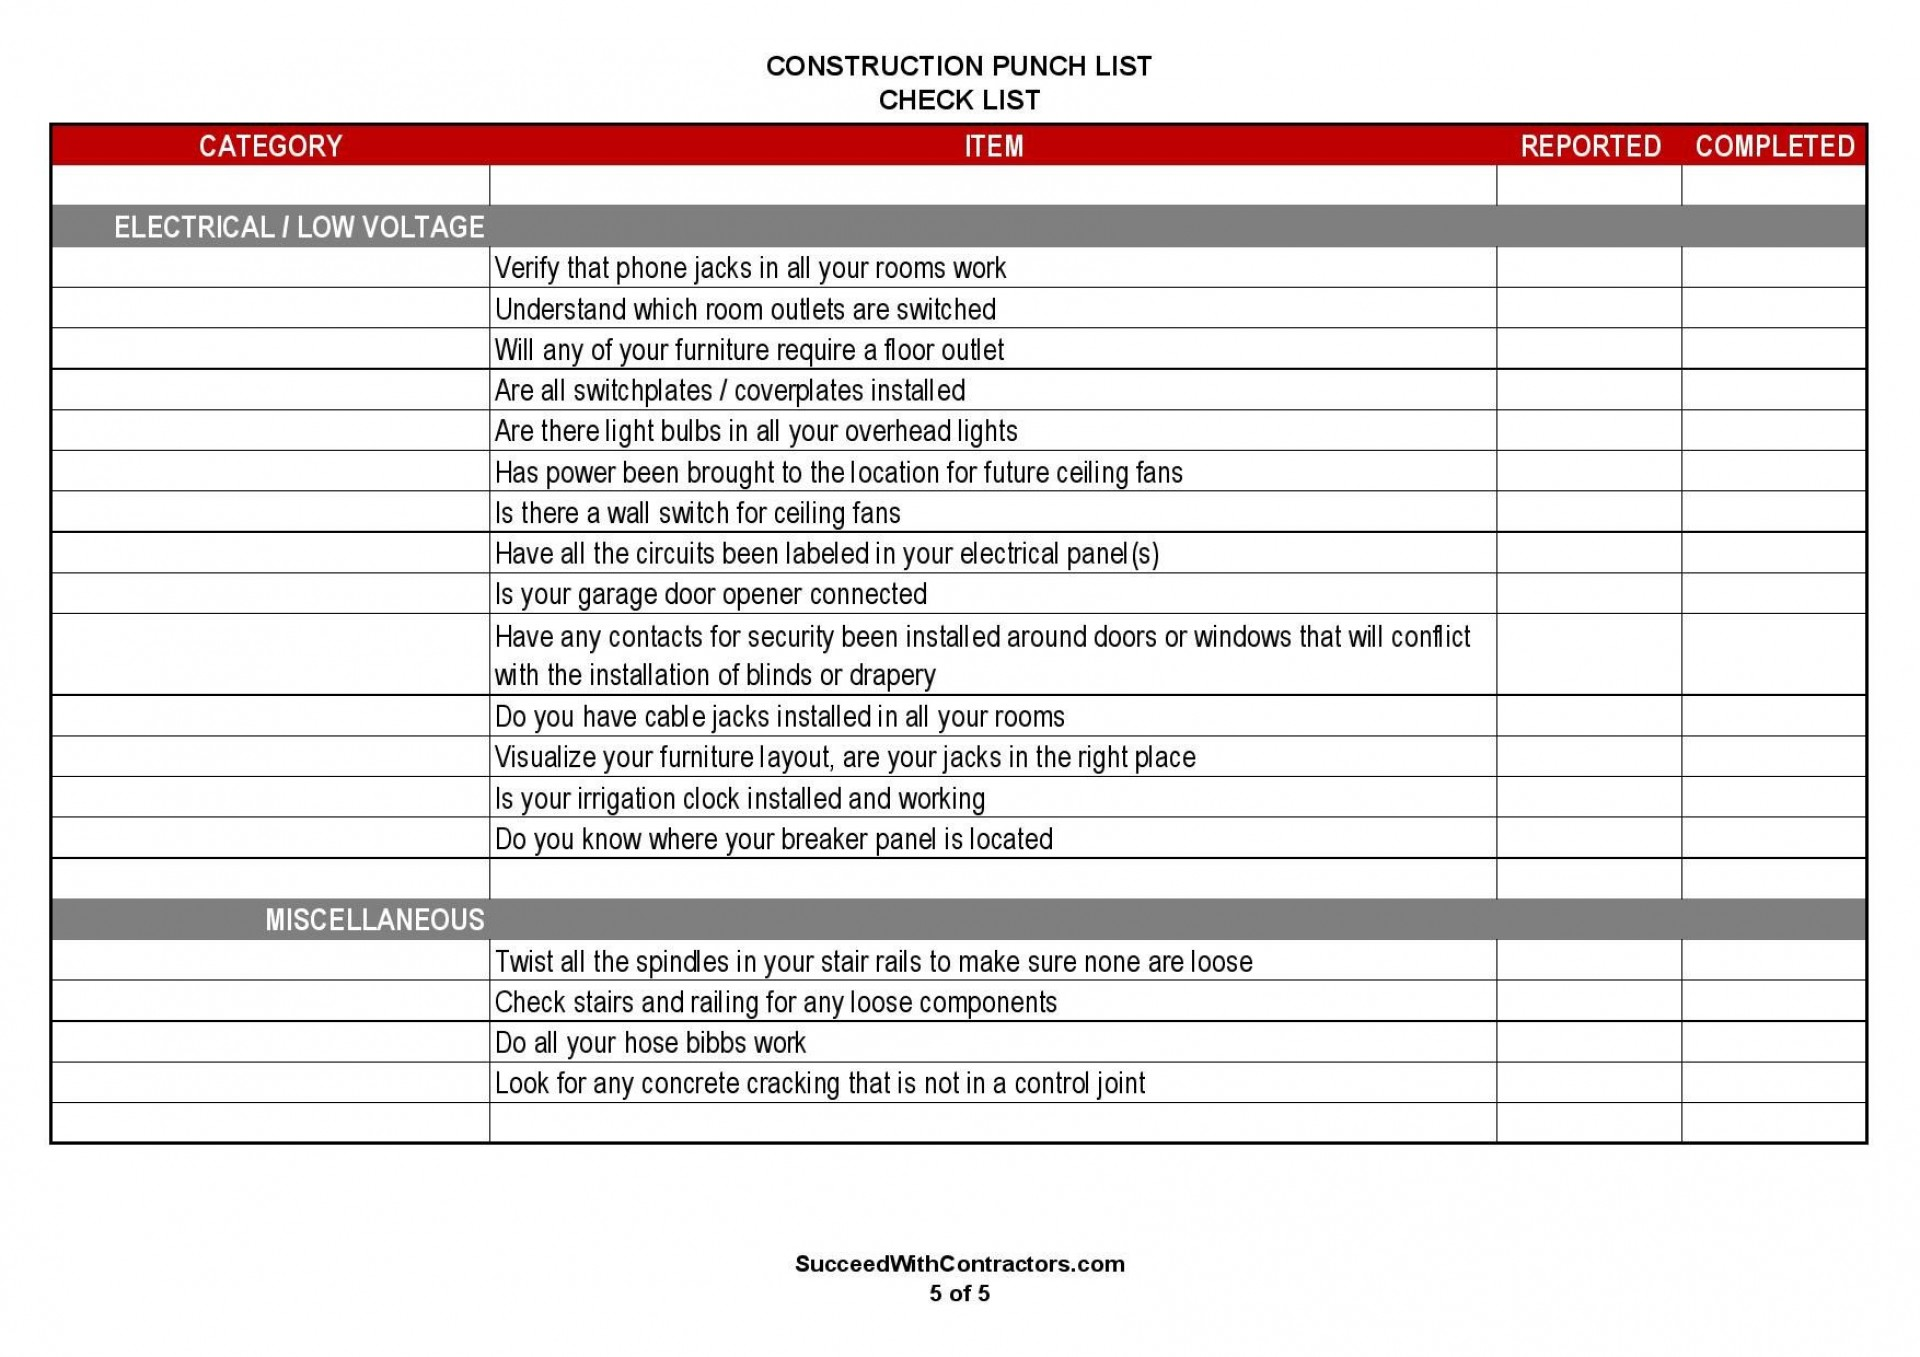 002 Awful Construction Punch List Template Highest Quality  New Home Pdf1920